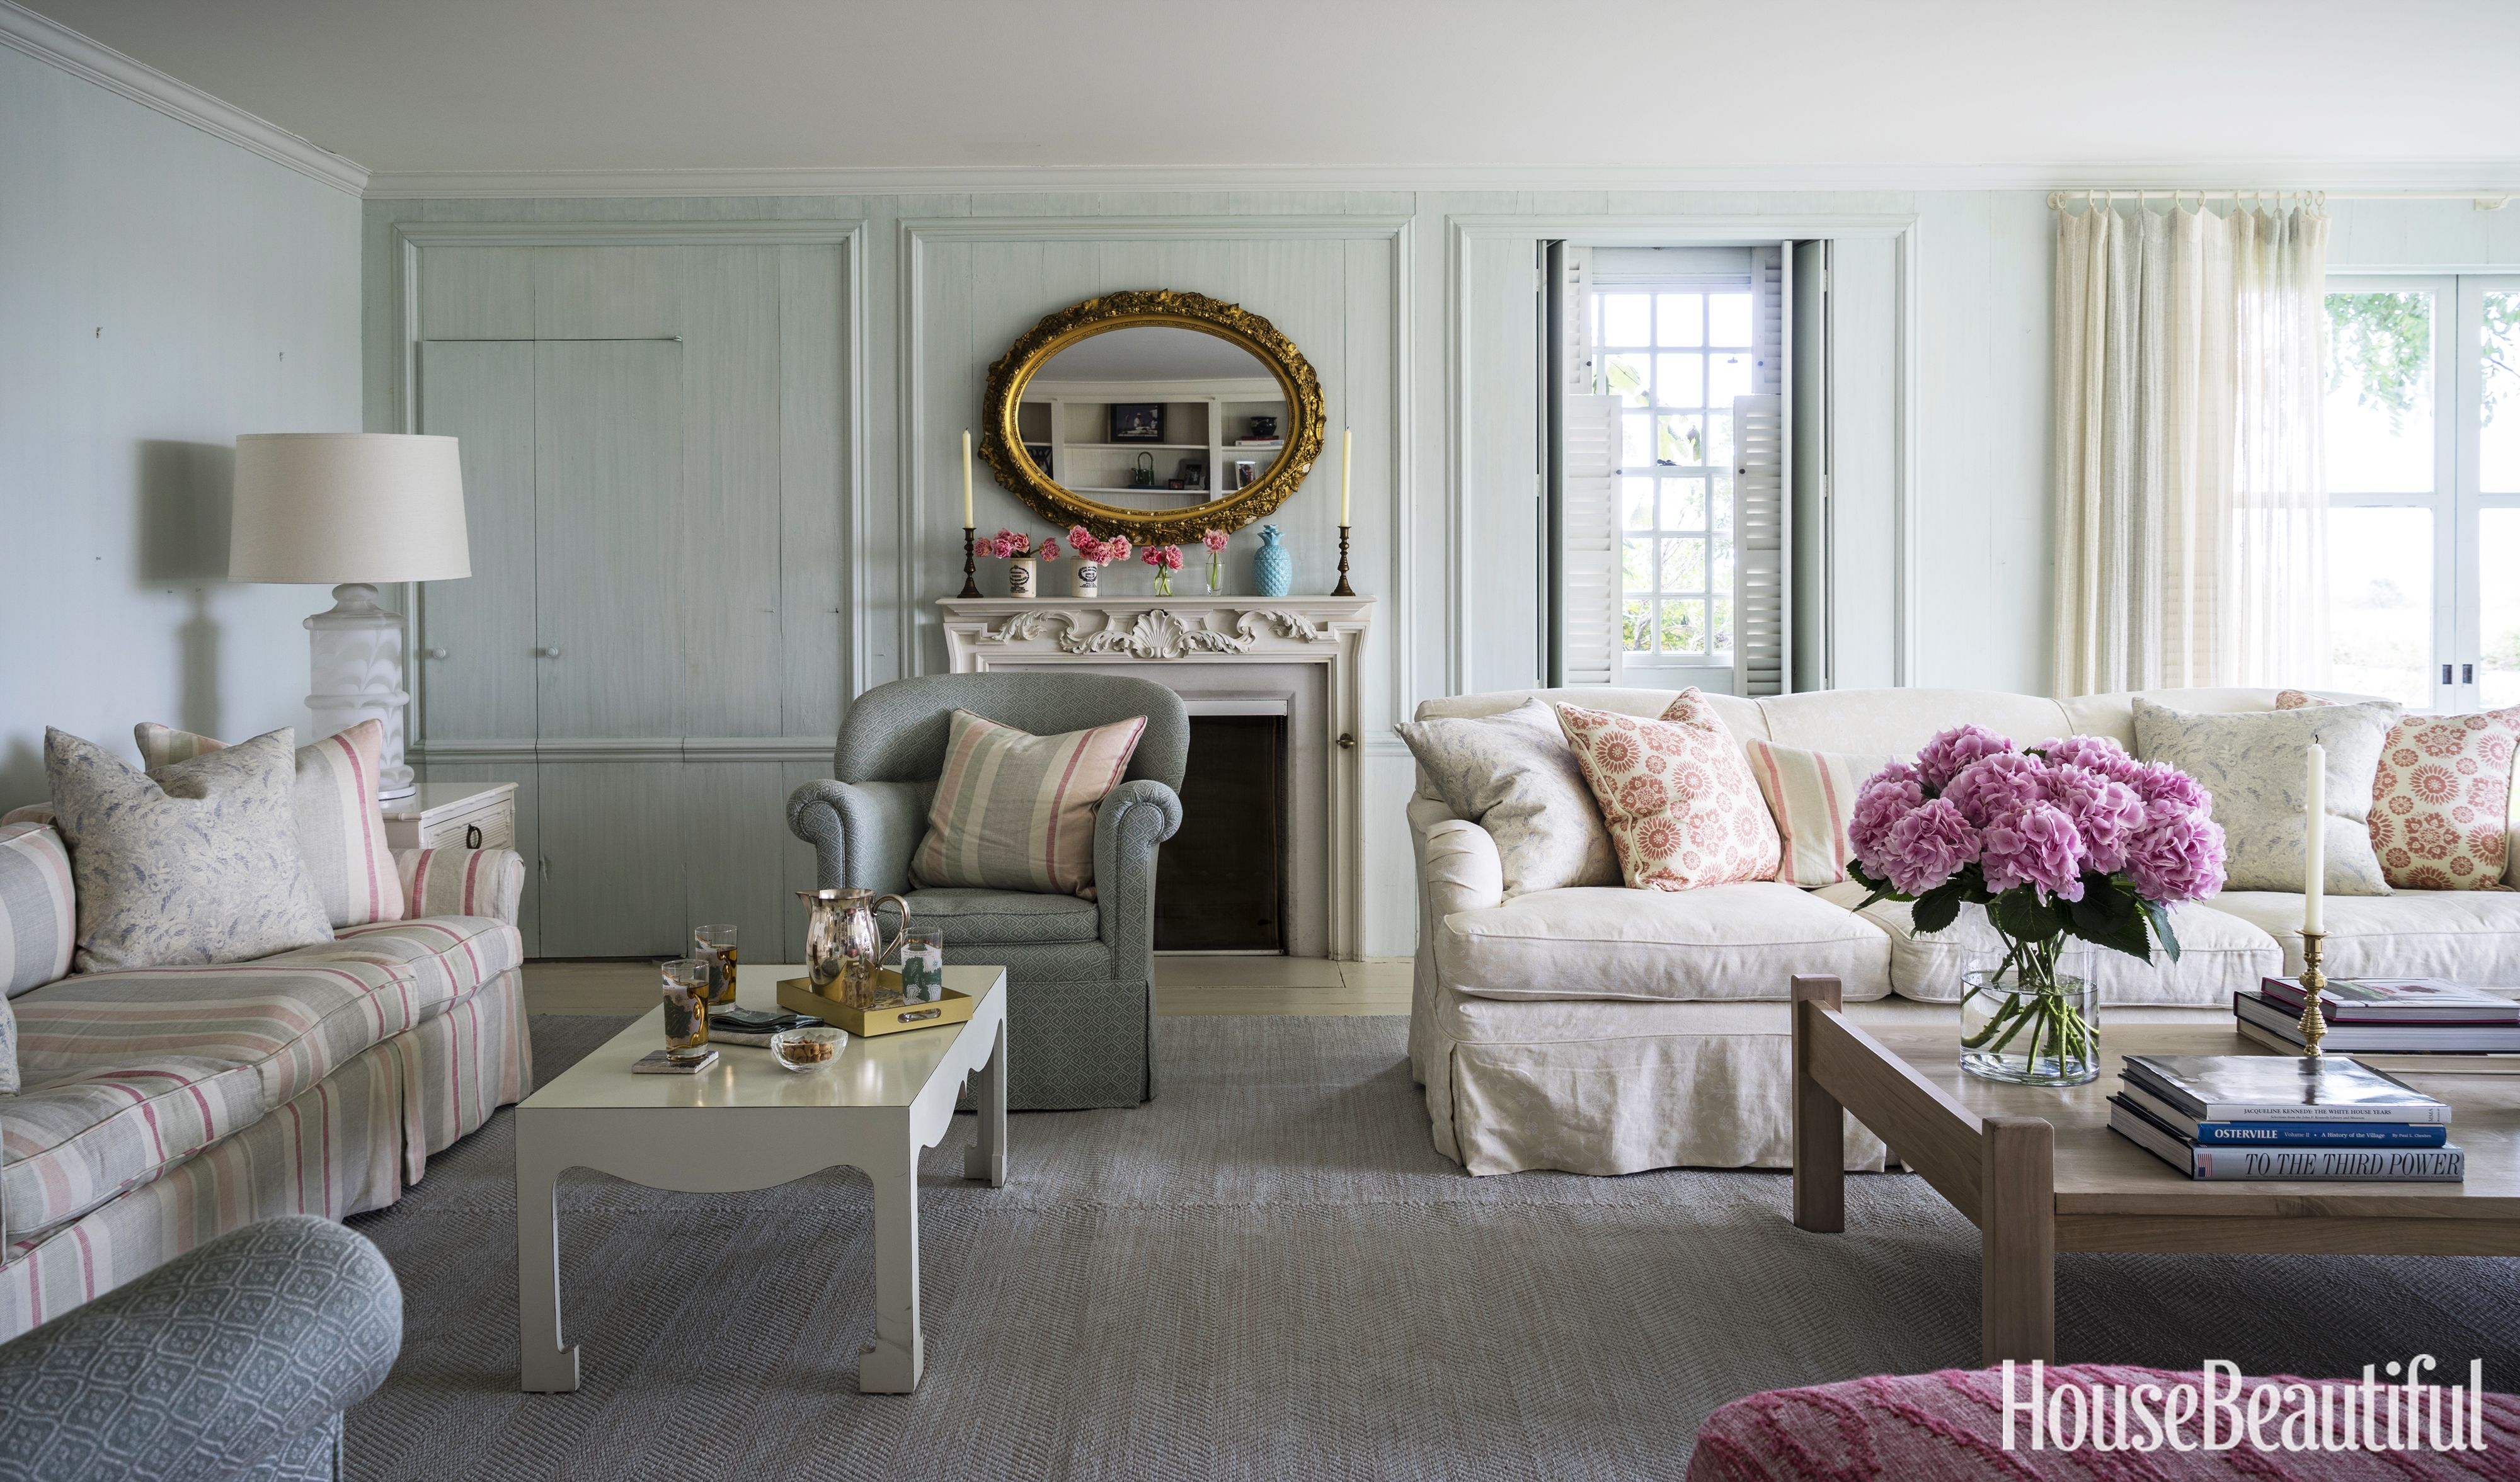 Inside jackie kennedy 39 s charming cape cod vacation spot - Cape cod decorating style living room ...